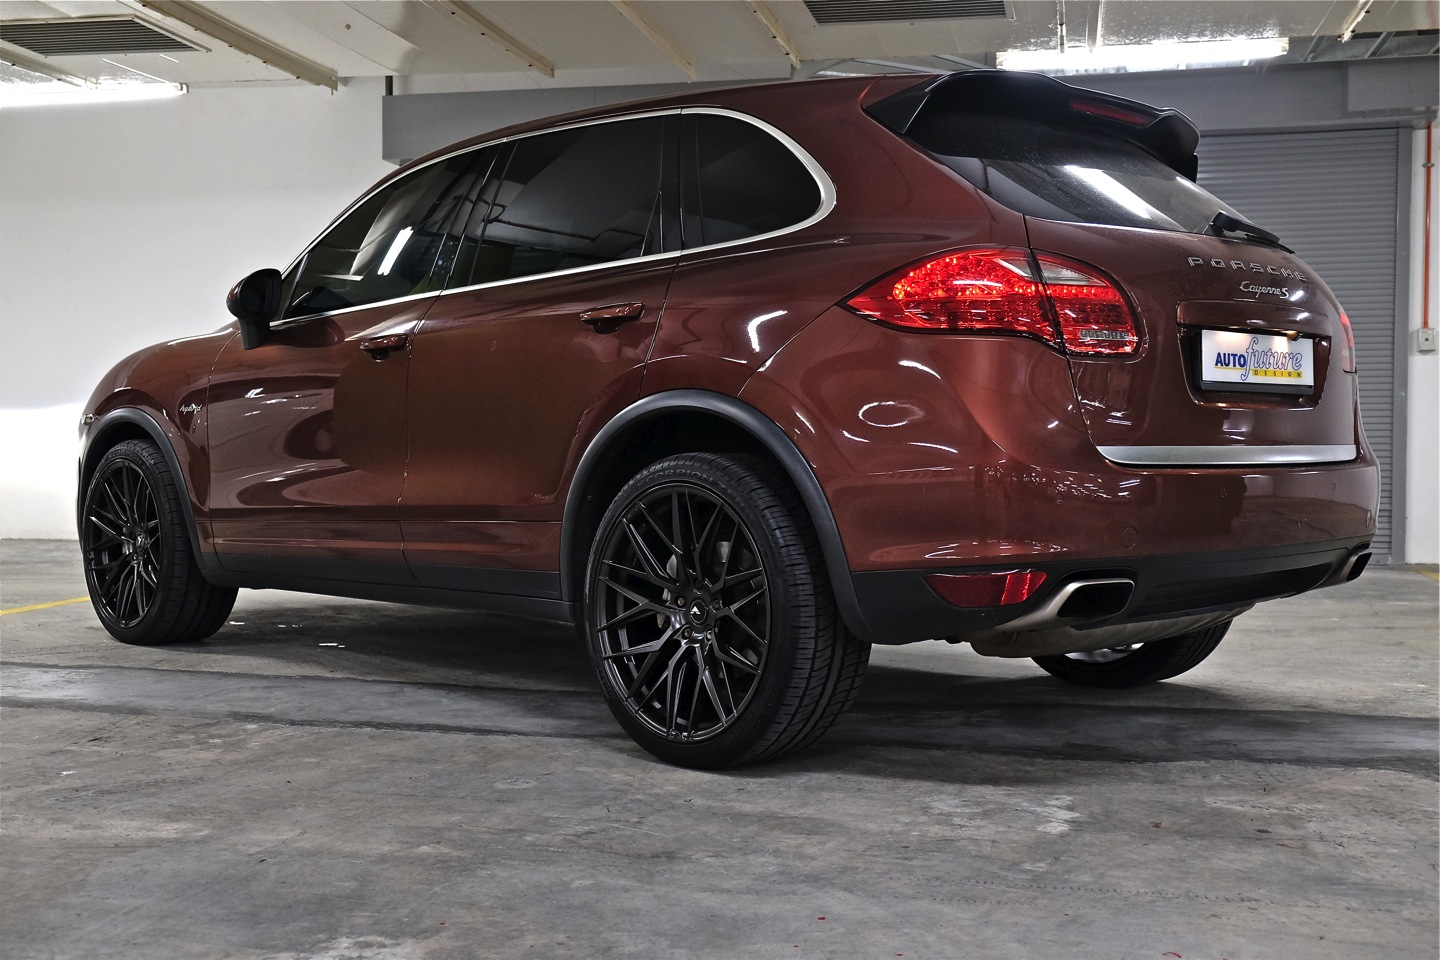 phase one porsche cayenne s hybrid featuring vorsteiner v ff 107 wheels autofuture design. Black Bedroom Furniture Sets. Home Design Ideas